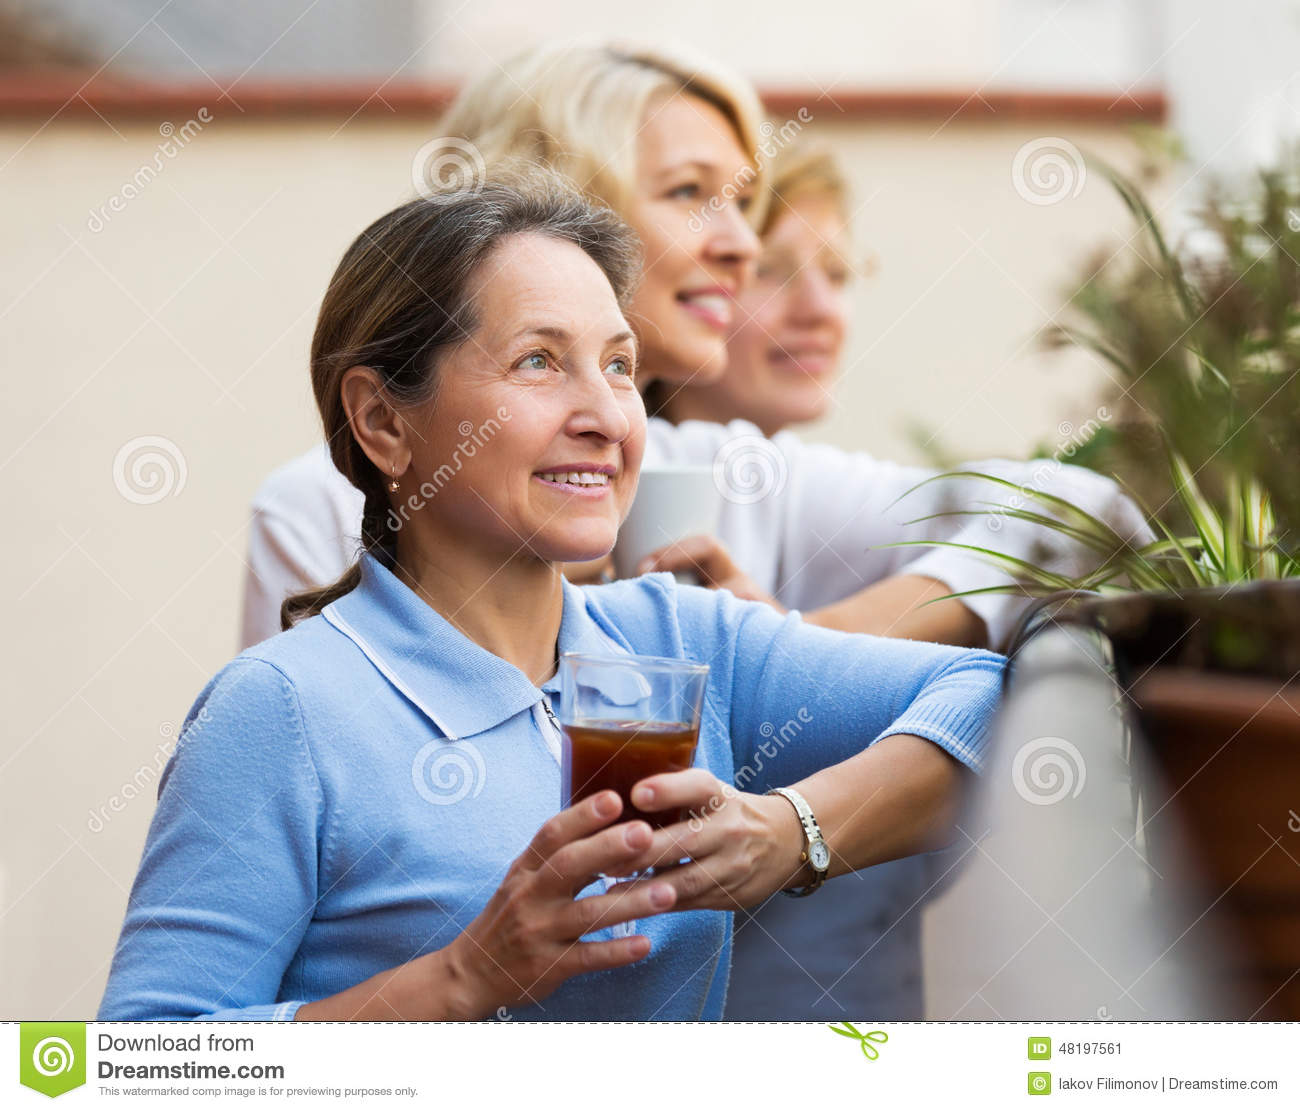 mountlake terrace single mature ladies Come join the men of mountlake terrace  every tuesday and 10:30 am a group of people meet for  each month the women of mountlake terrace christian .